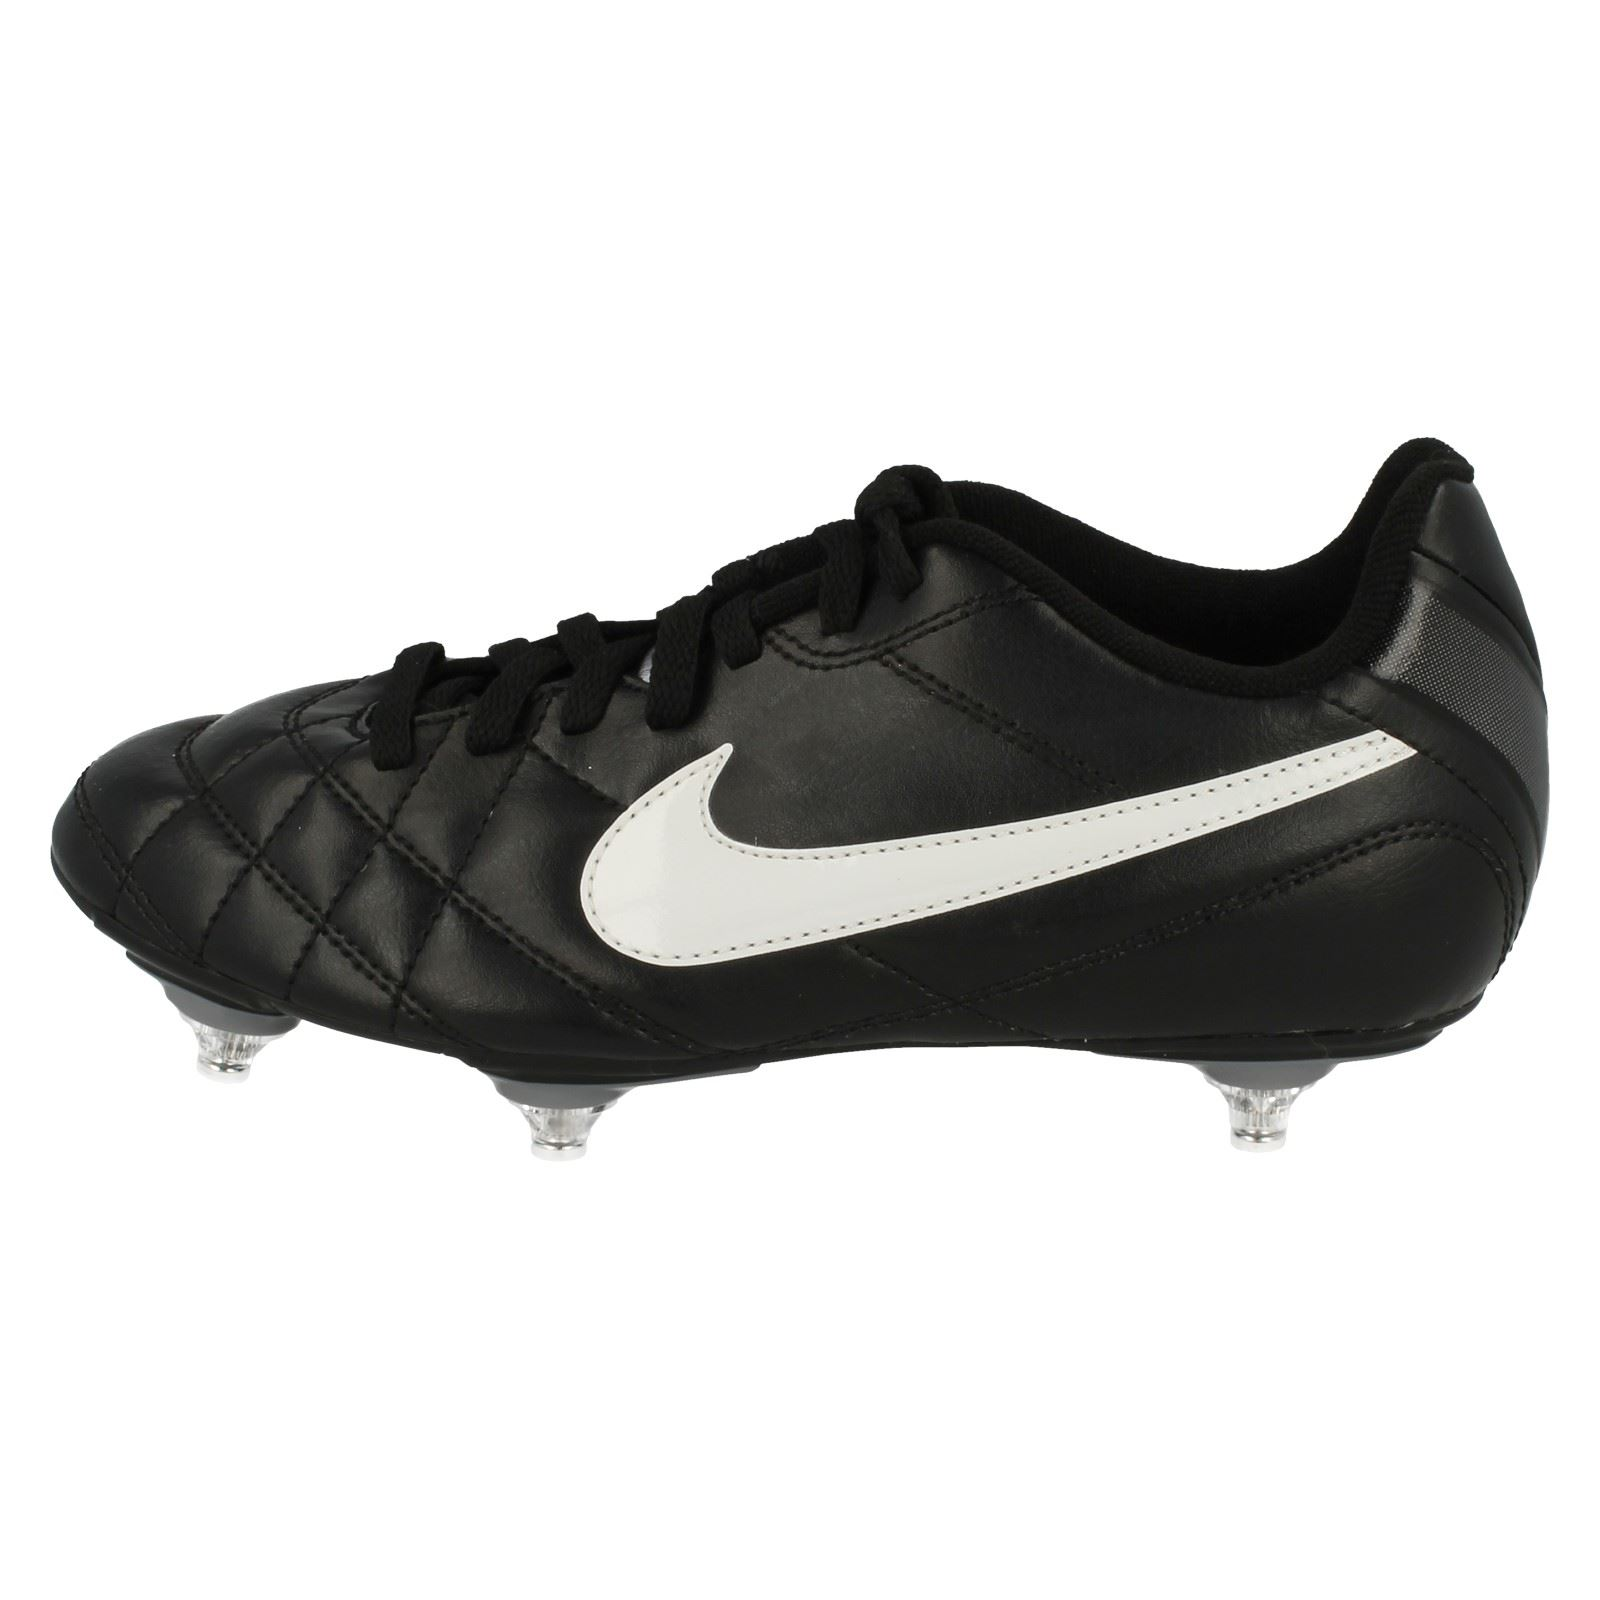 Genealogía provocar Cena  Nike Boys Football Boots - JR Tiempo Rio for sale online | eBay